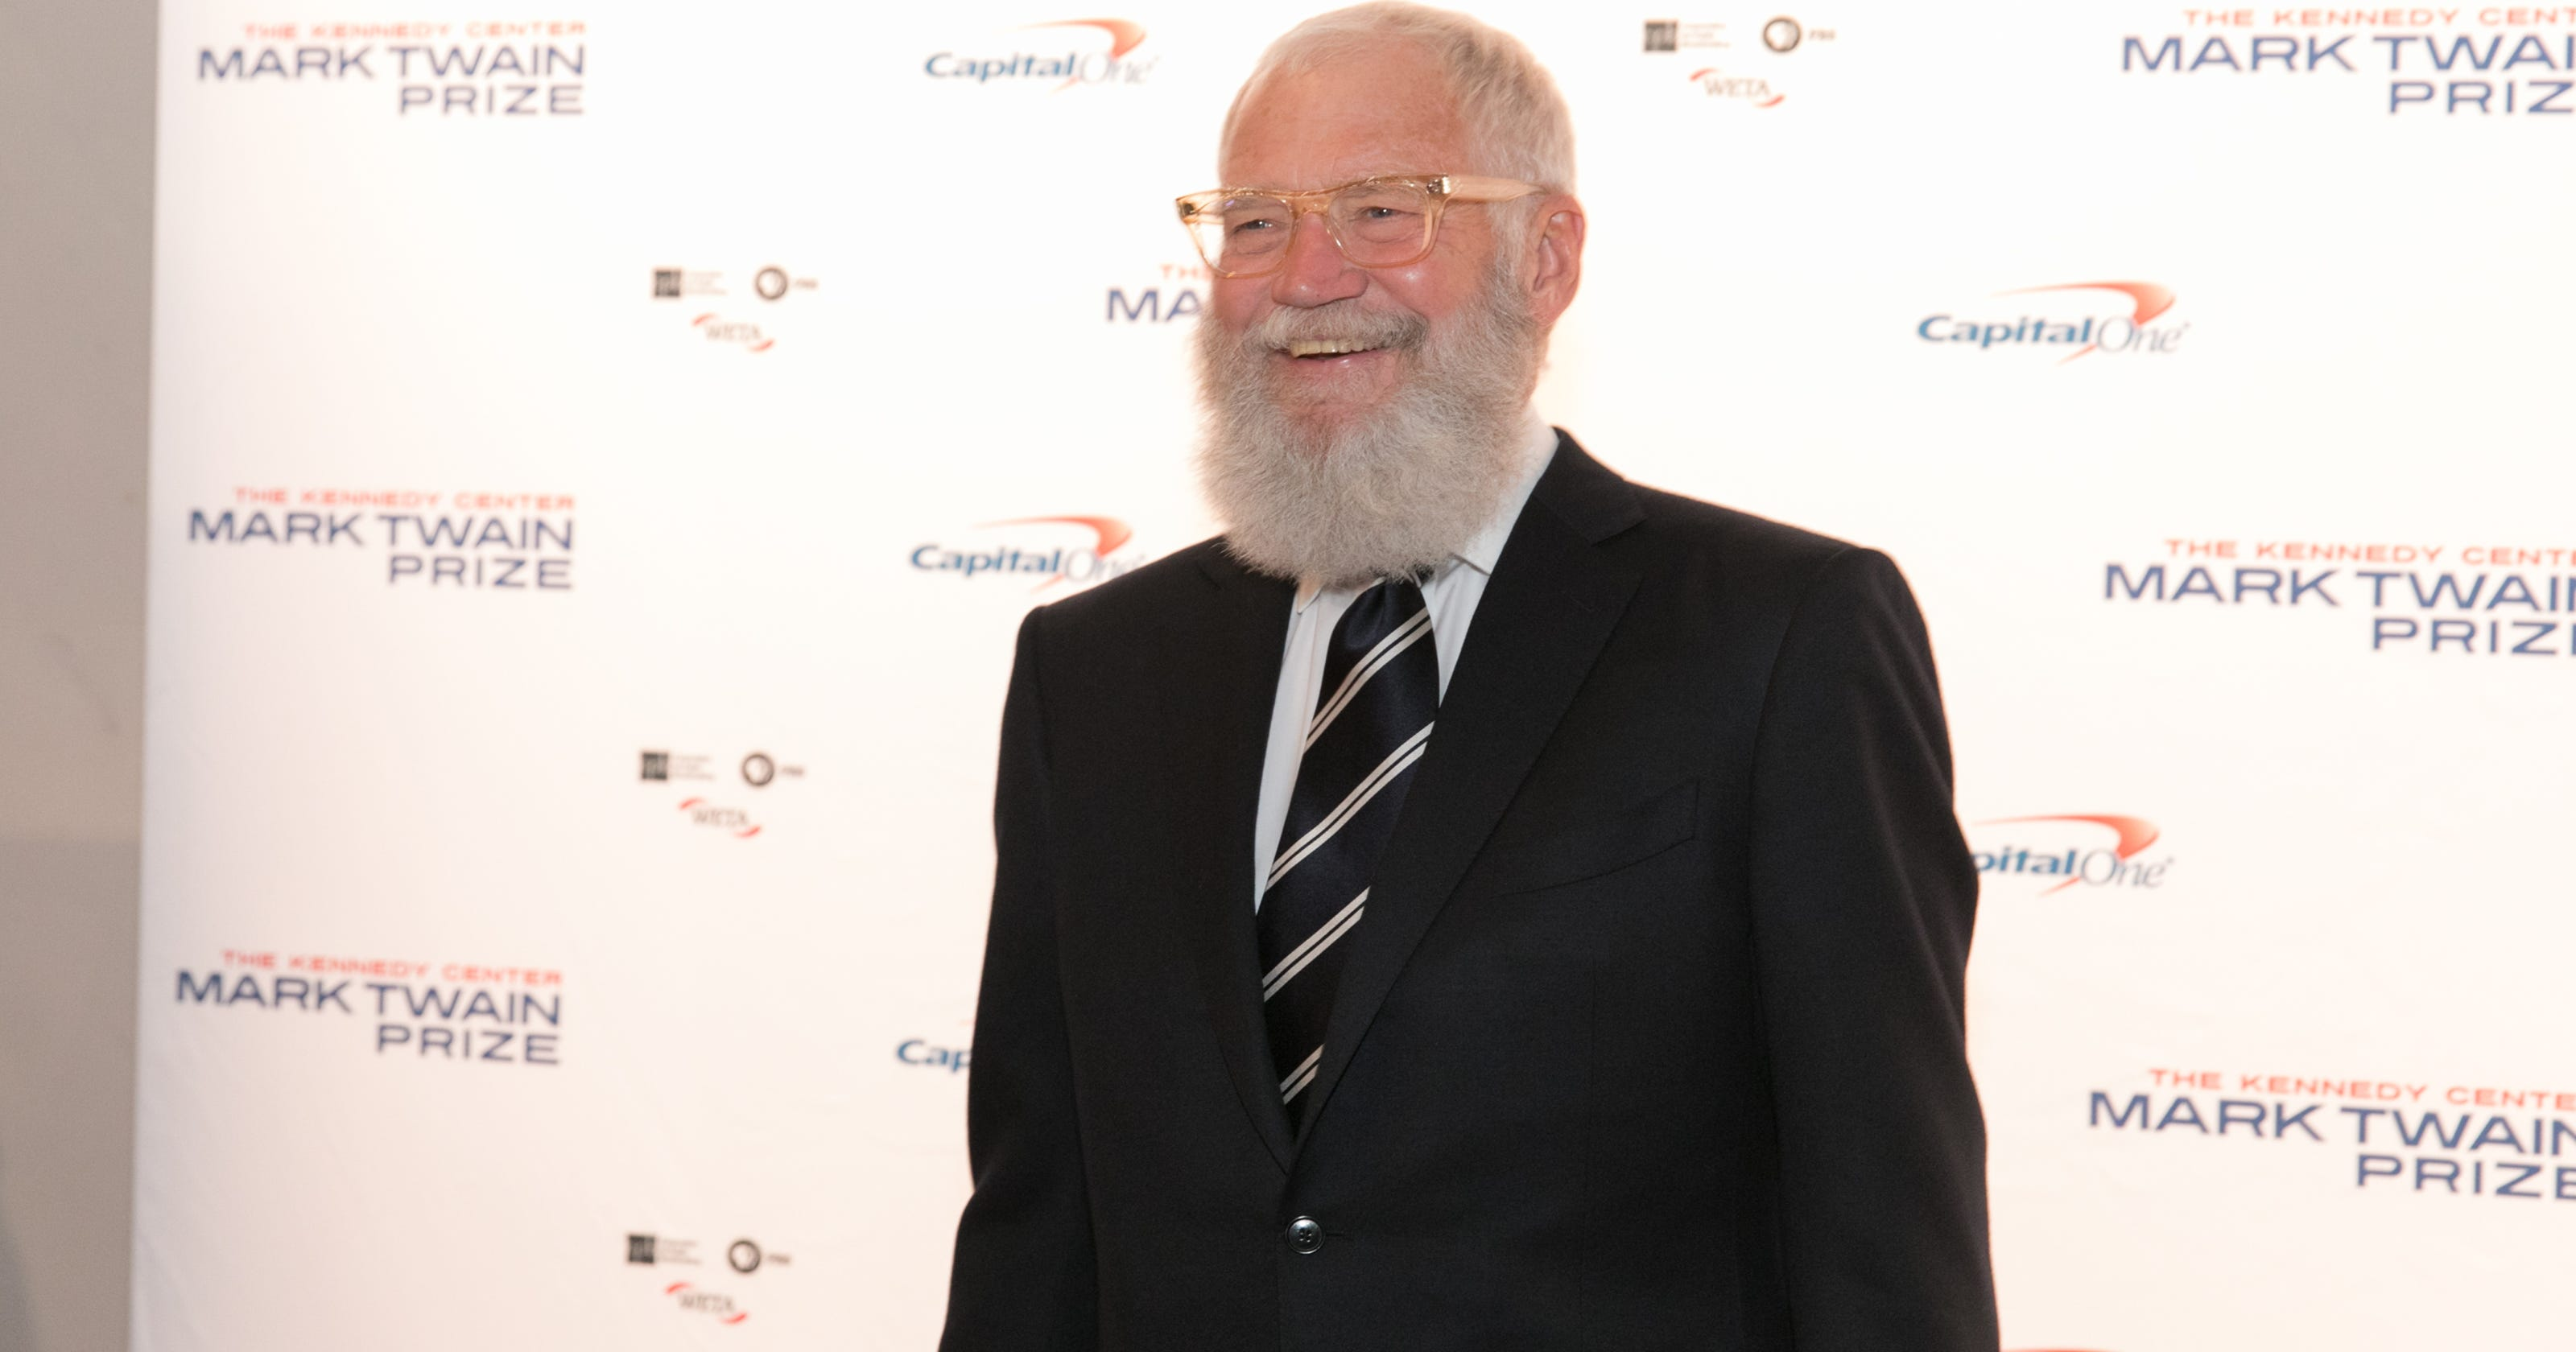 TV host David Letterman honored with Mark Twain Prize